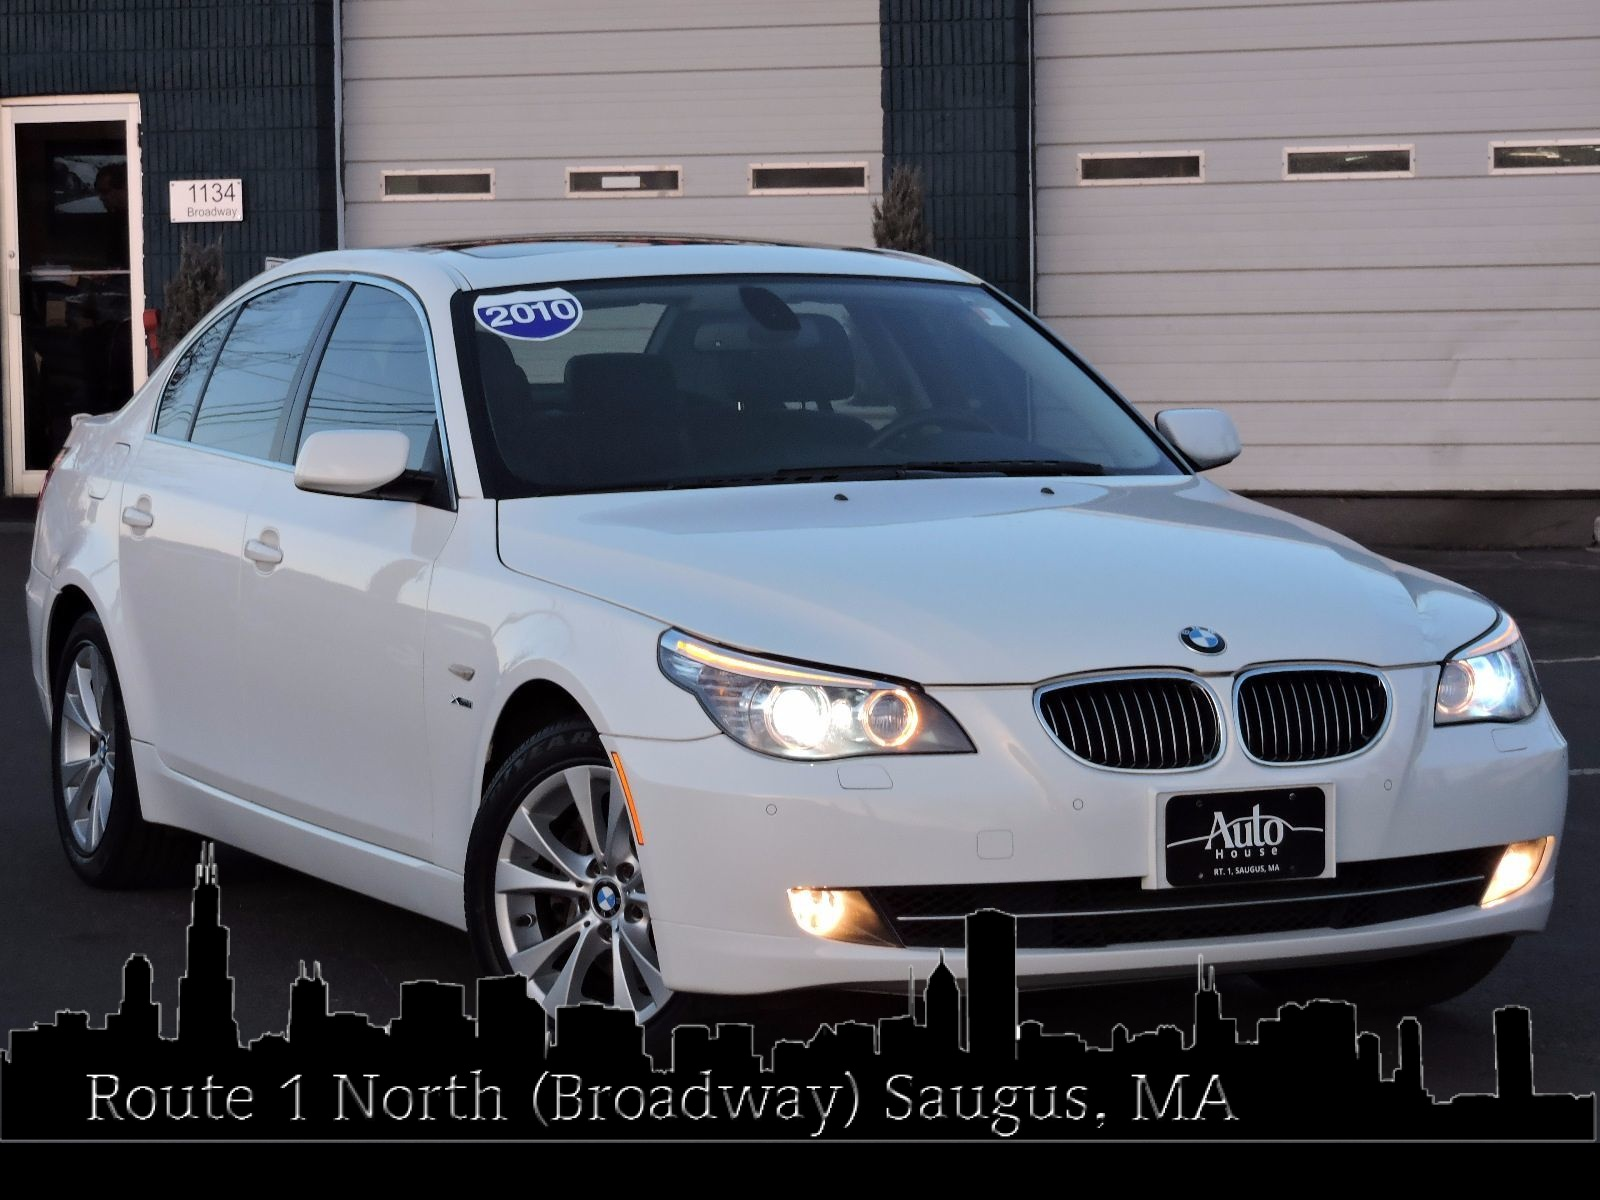 Used BMW I XDrive TypeS At Auto House USA Saugus - 2010 bmw 535i